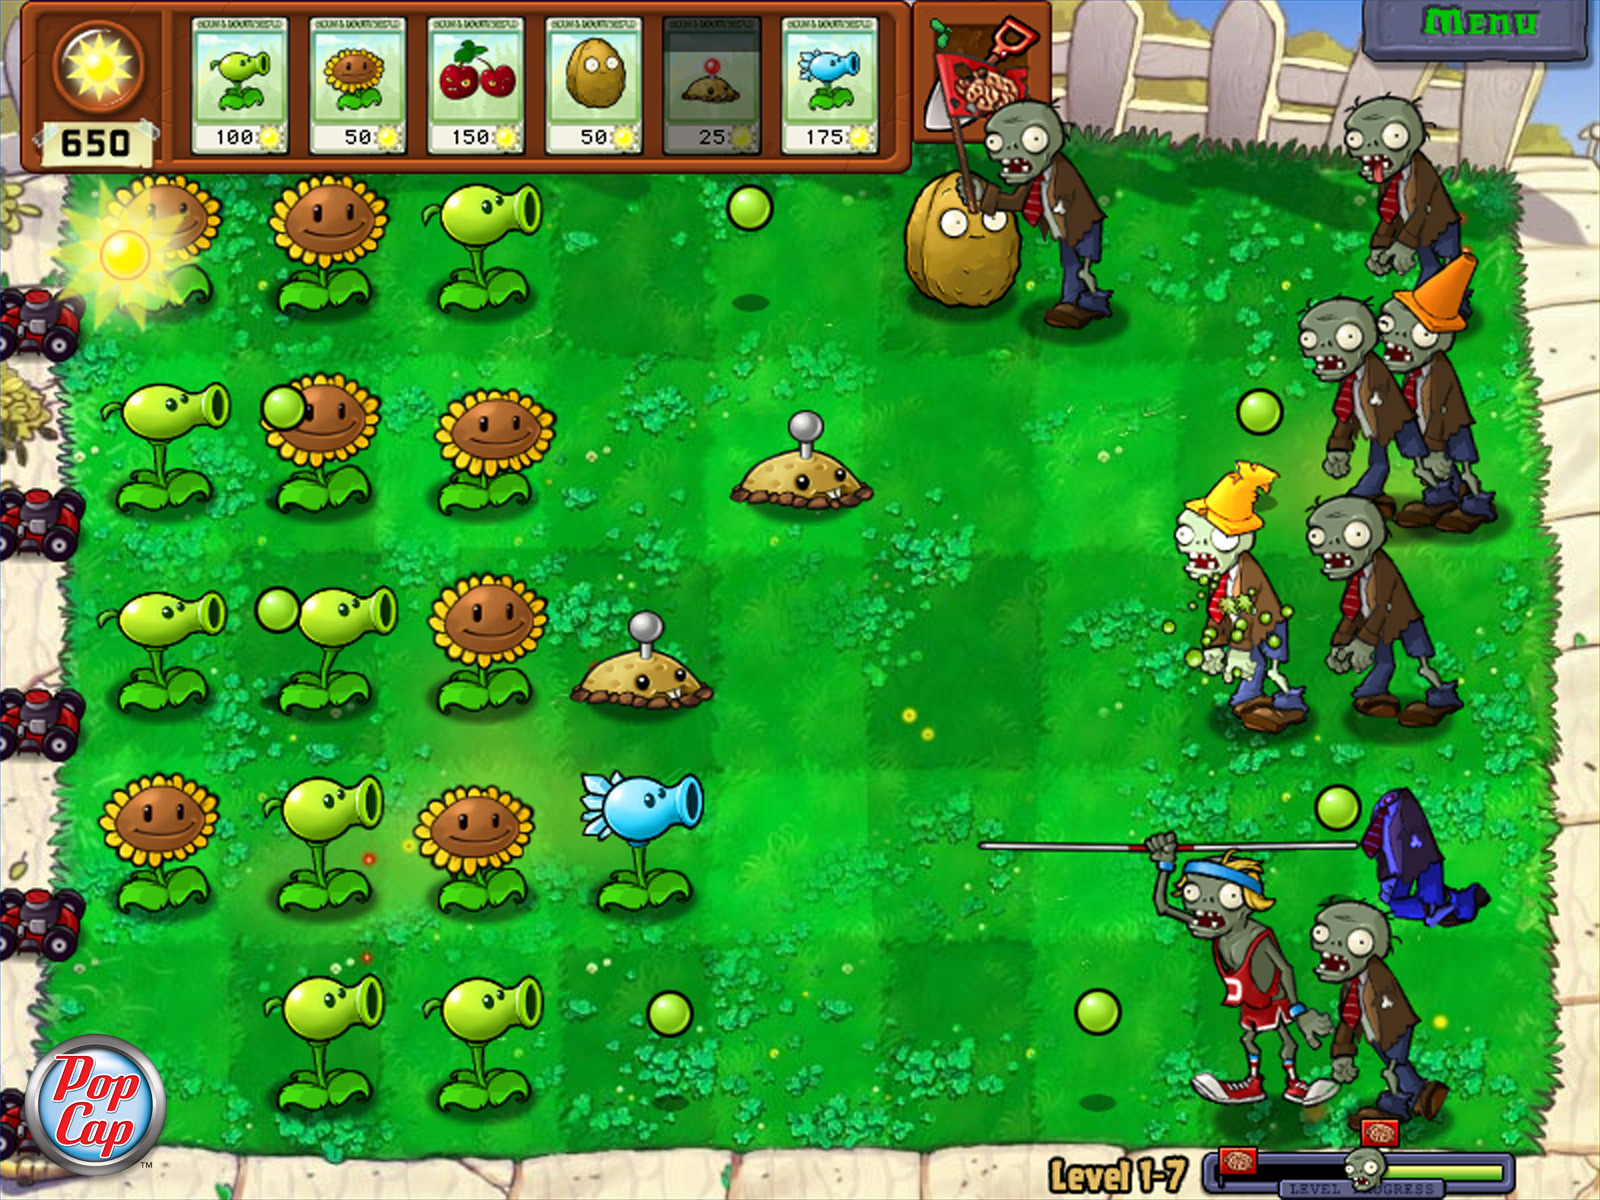 Plants_vs_Zombies_Screenshot_1.jpg